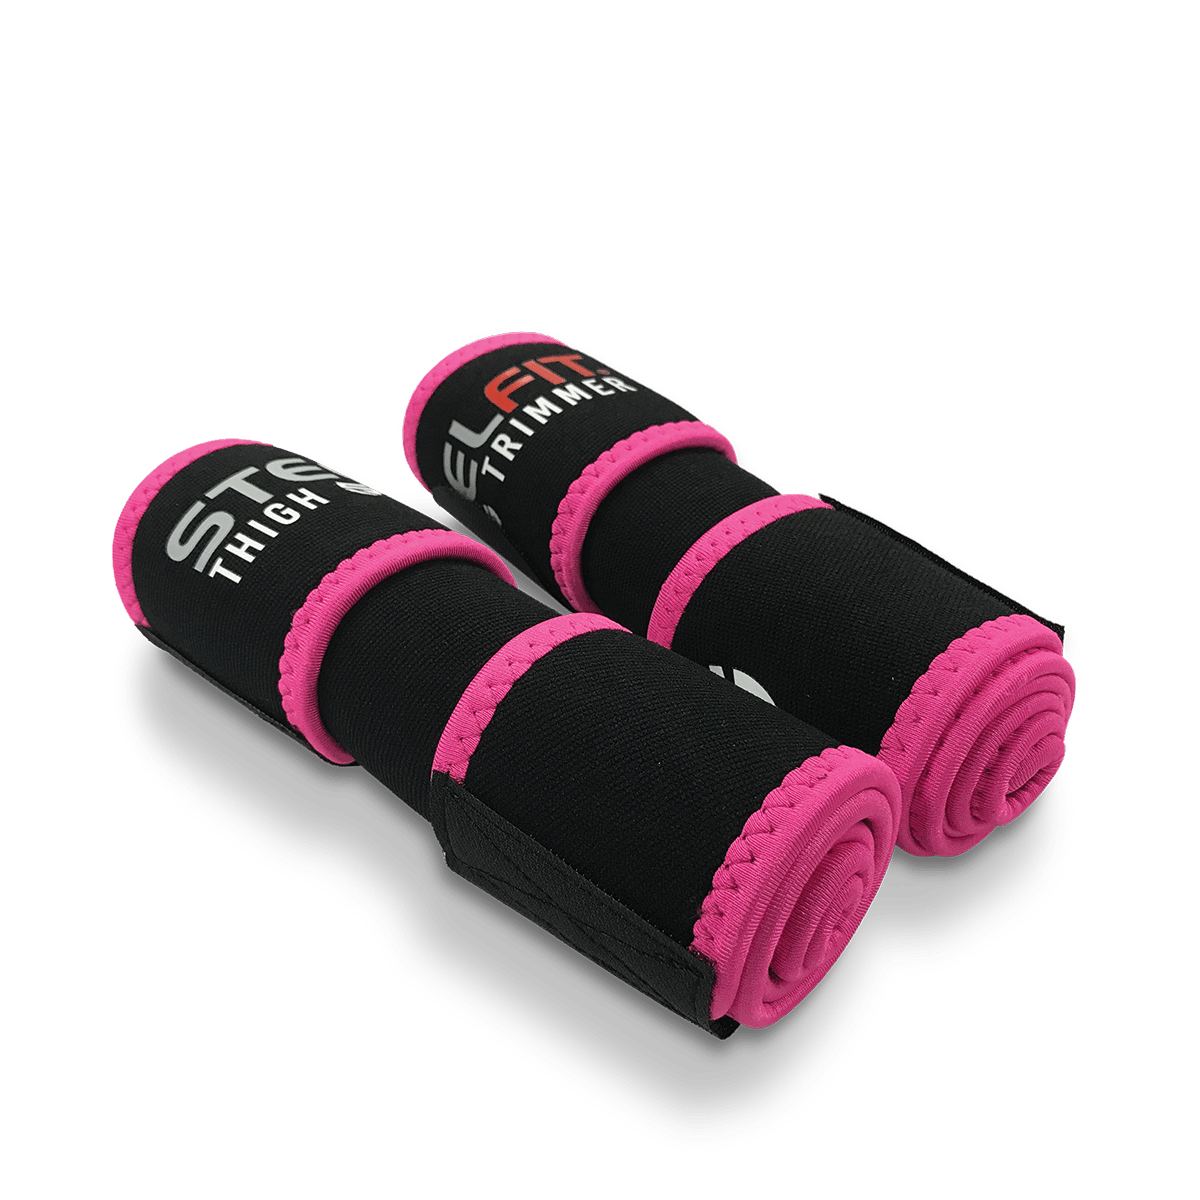 STEELFIT THIGH TRIMMERS